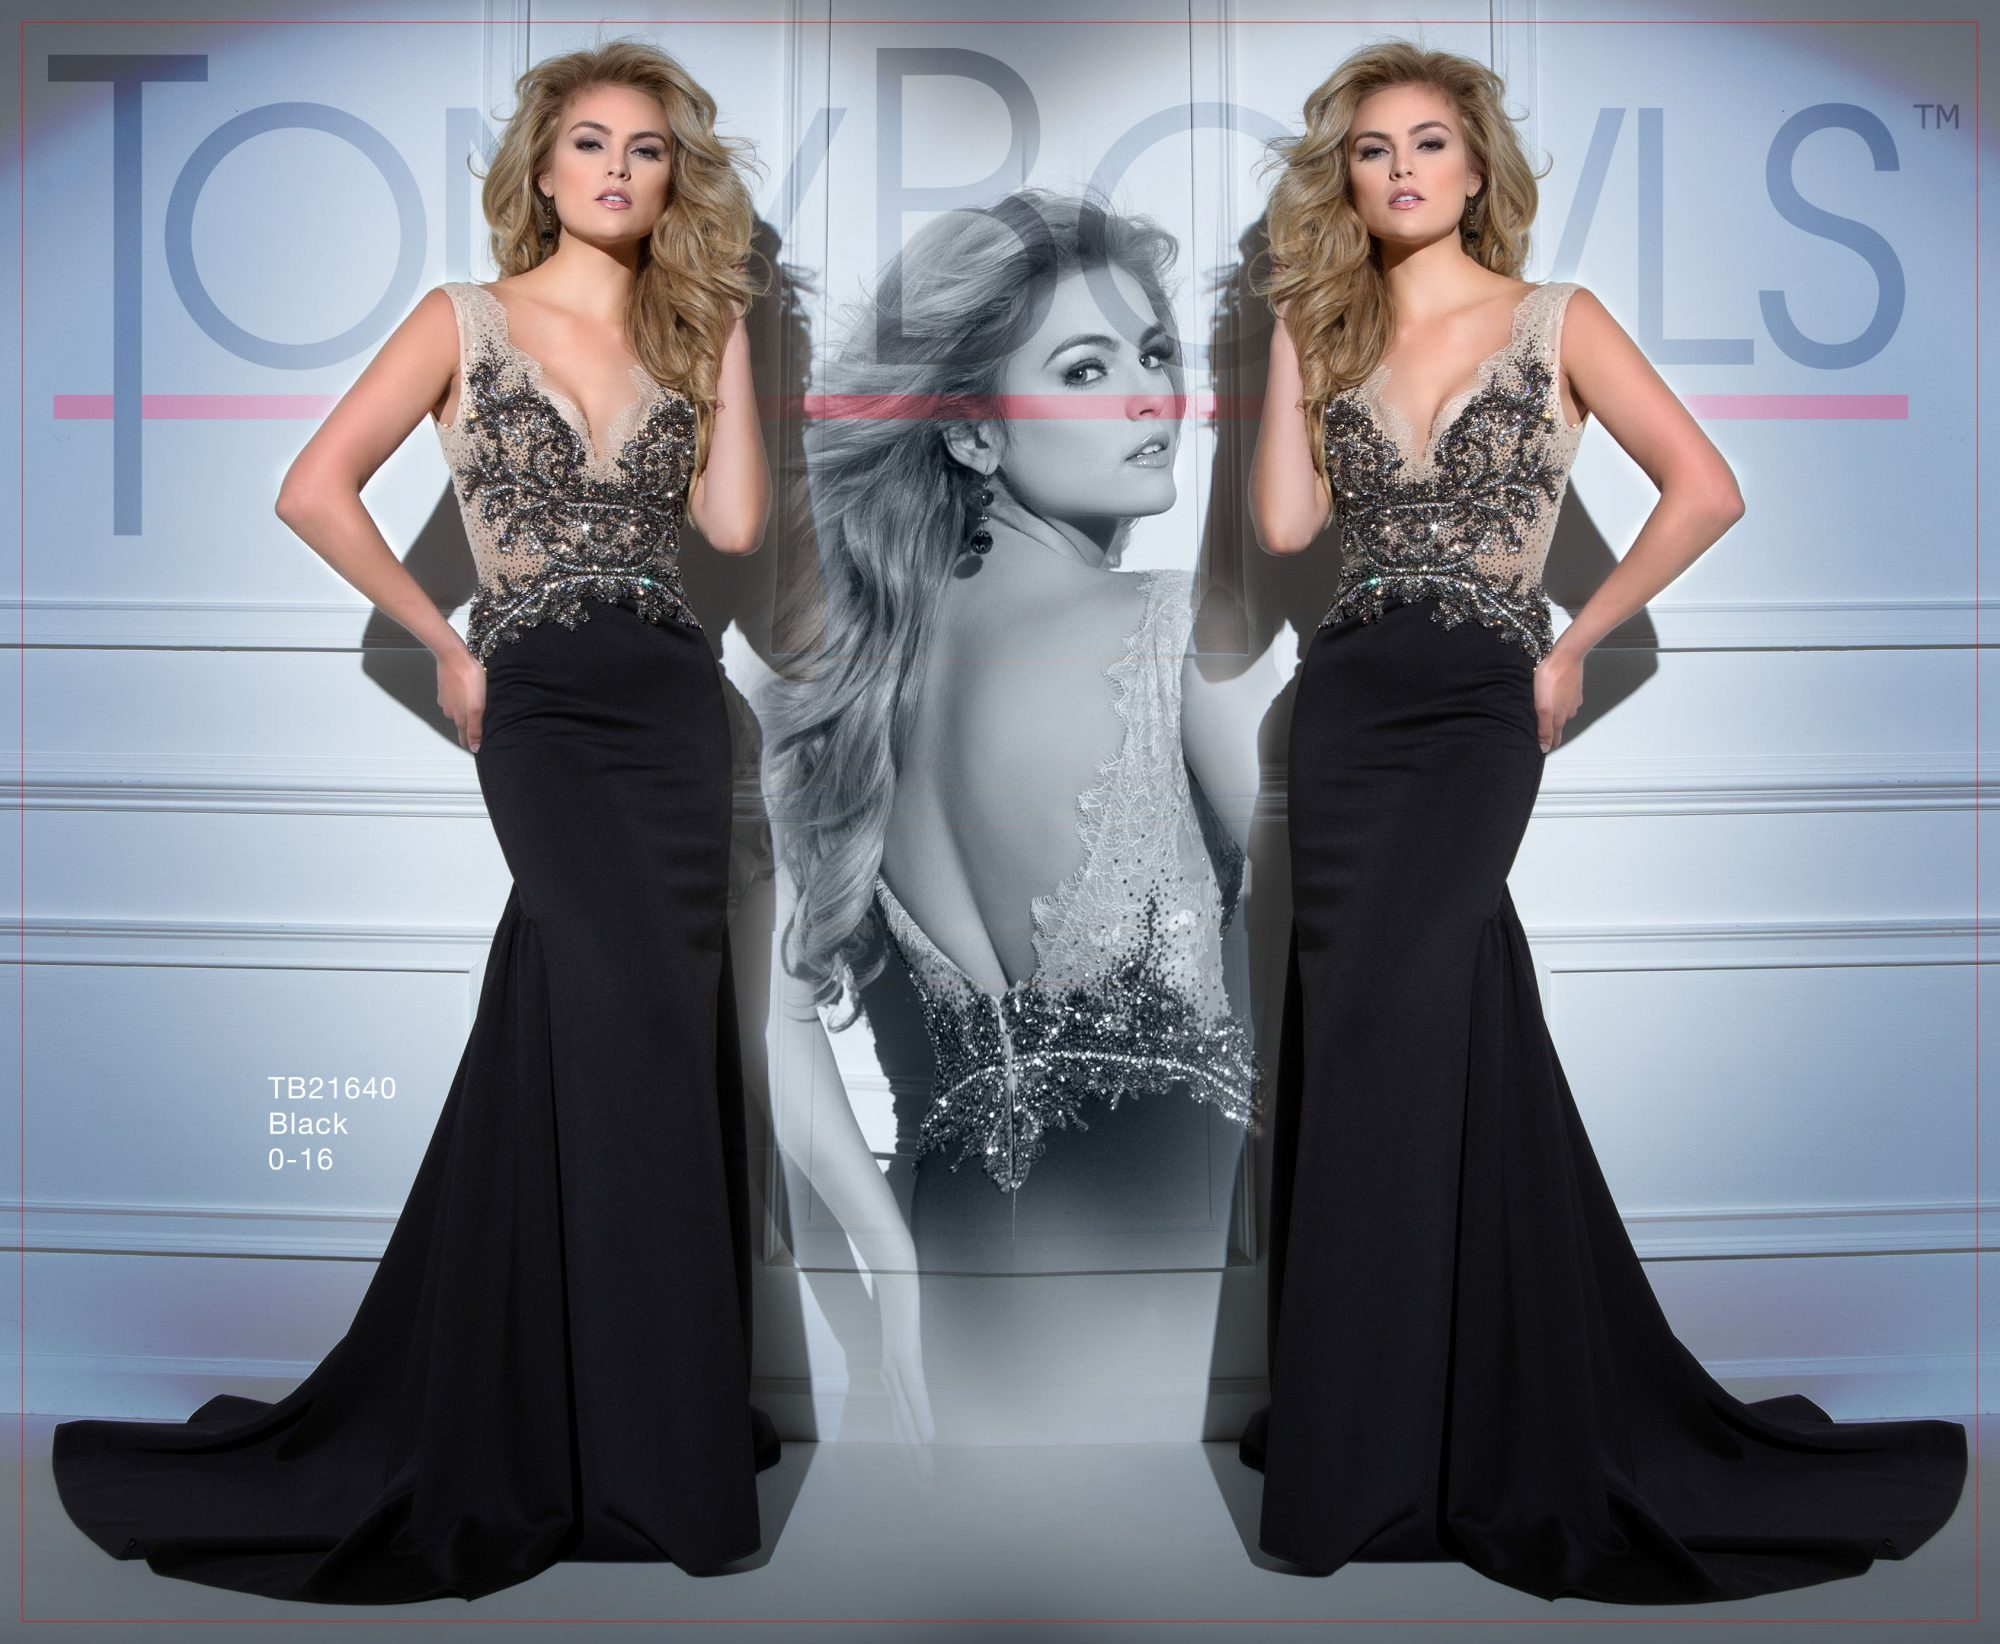 Style TB21640 by Tony Bowls Designs